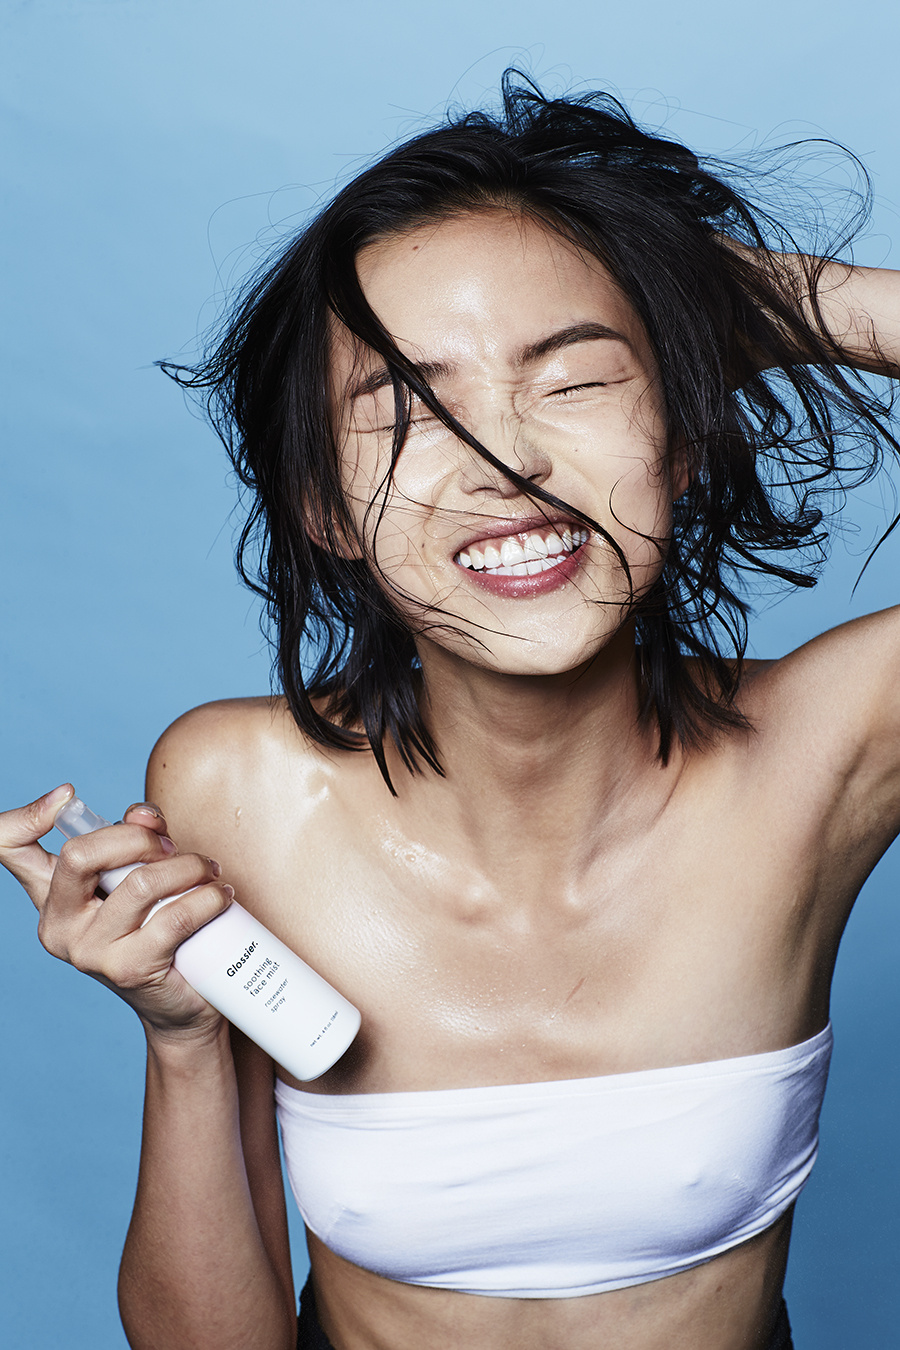 Glossier's #SkinIsIn Trend is One to Celebrate